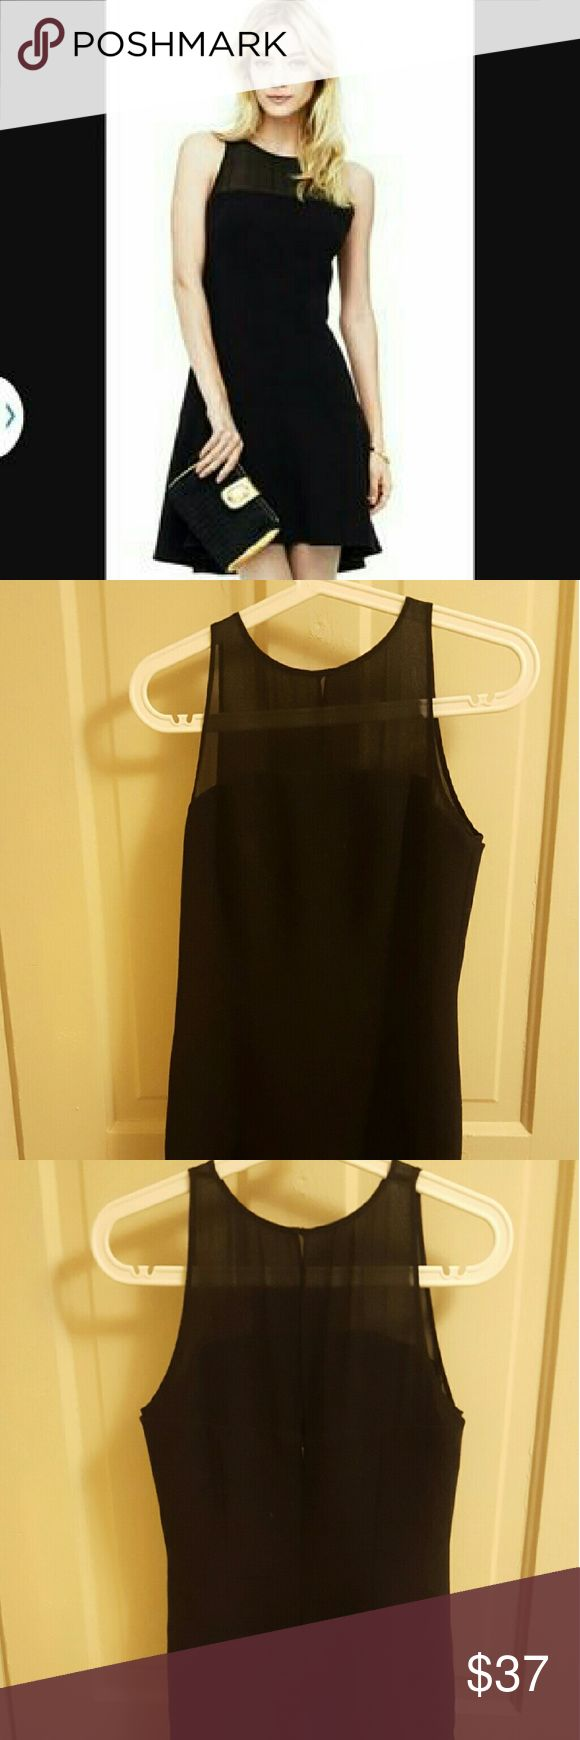 Last day--Club Monaco Lorna Dress Size 6, true to size. Never worn, in perfect condition. Scuba material with sheer top and flounce bottom. The perfect little black dress. Club Monaco Dresses Midi